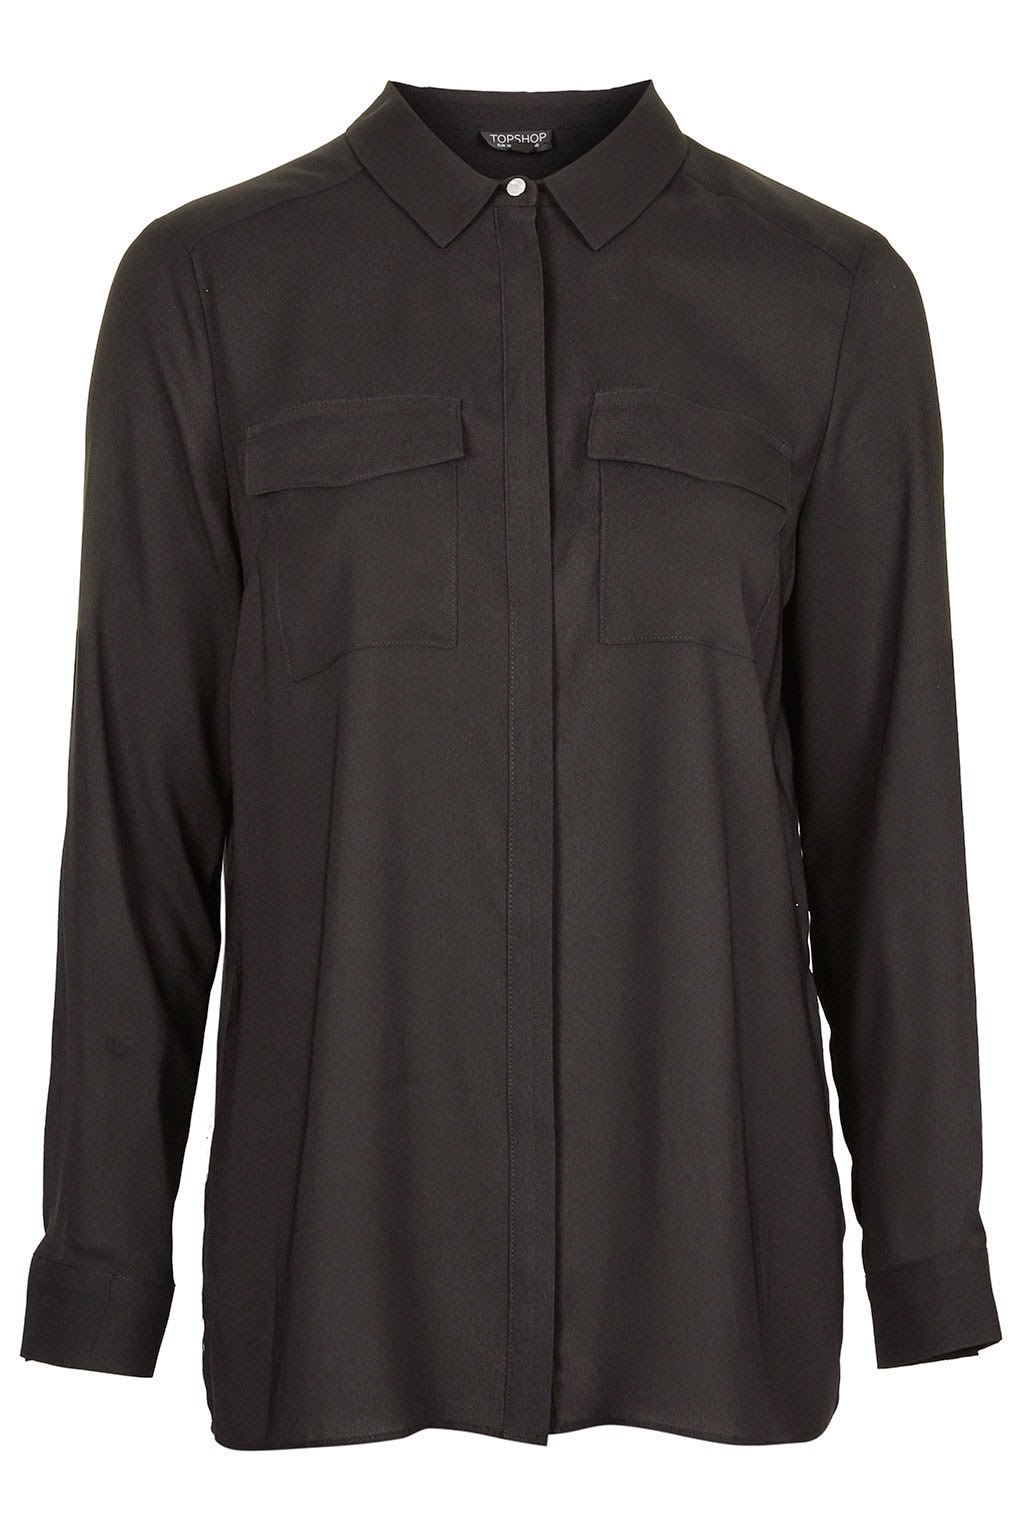 black topshop shirt